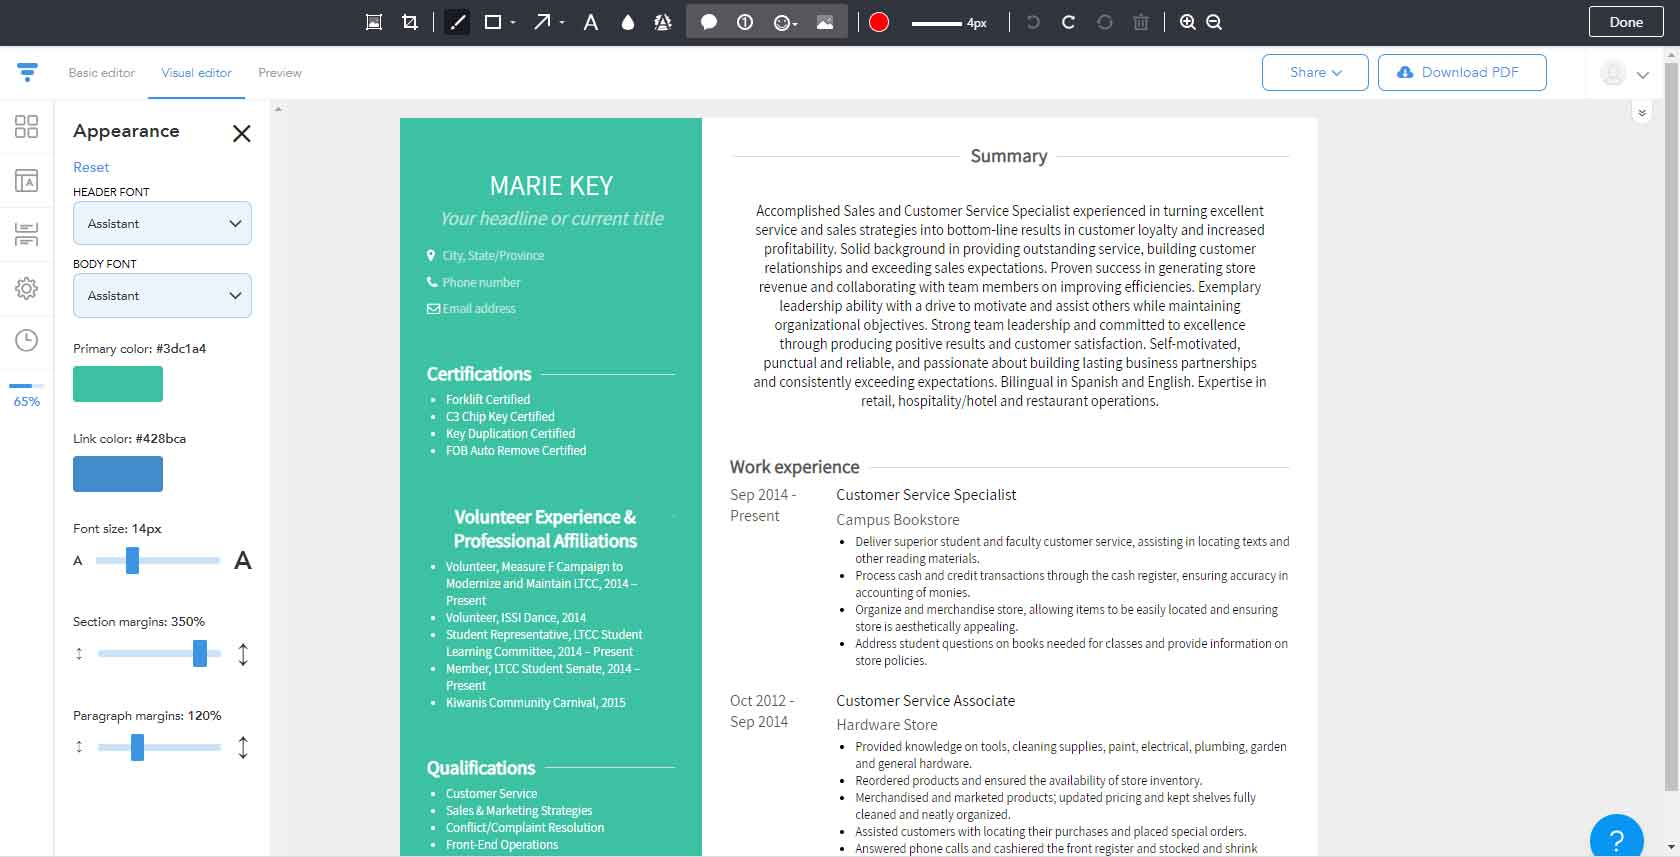 VisualCV Resume Creator allows users to create visually interesting résumés, cover letters, and websites that can be externally shared with prospective employers, using prebuilt templates. Sample résumés help users target their résumés for different job types.